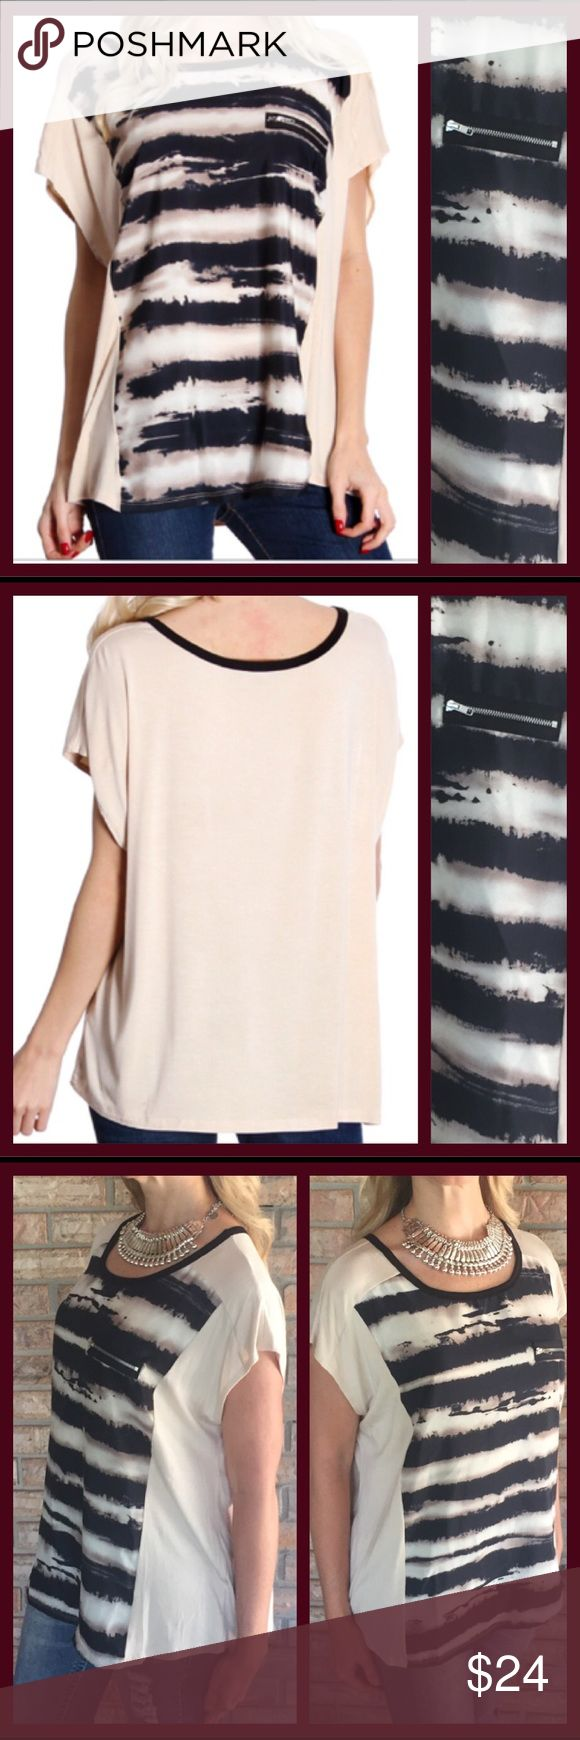 """❣LAST ONE❣Funky Fun Print Top w/Zipper Large You will love adding this funky fun top to liven up your wardrobe!  Taupe with black trendy abstract print panel & faux zipper accent. Soft & flattering fit.   Shell 95% Rayon 5% Spandex  Panel Polyester   Small armpit to armpit 21"""" 21.5L Medium armpit to armpit 22"""" 23.5L Large armpit to armpit 25"""" 24L XL armpit to armpit 25.5"""" 25L Flawless Tops Blouses"""